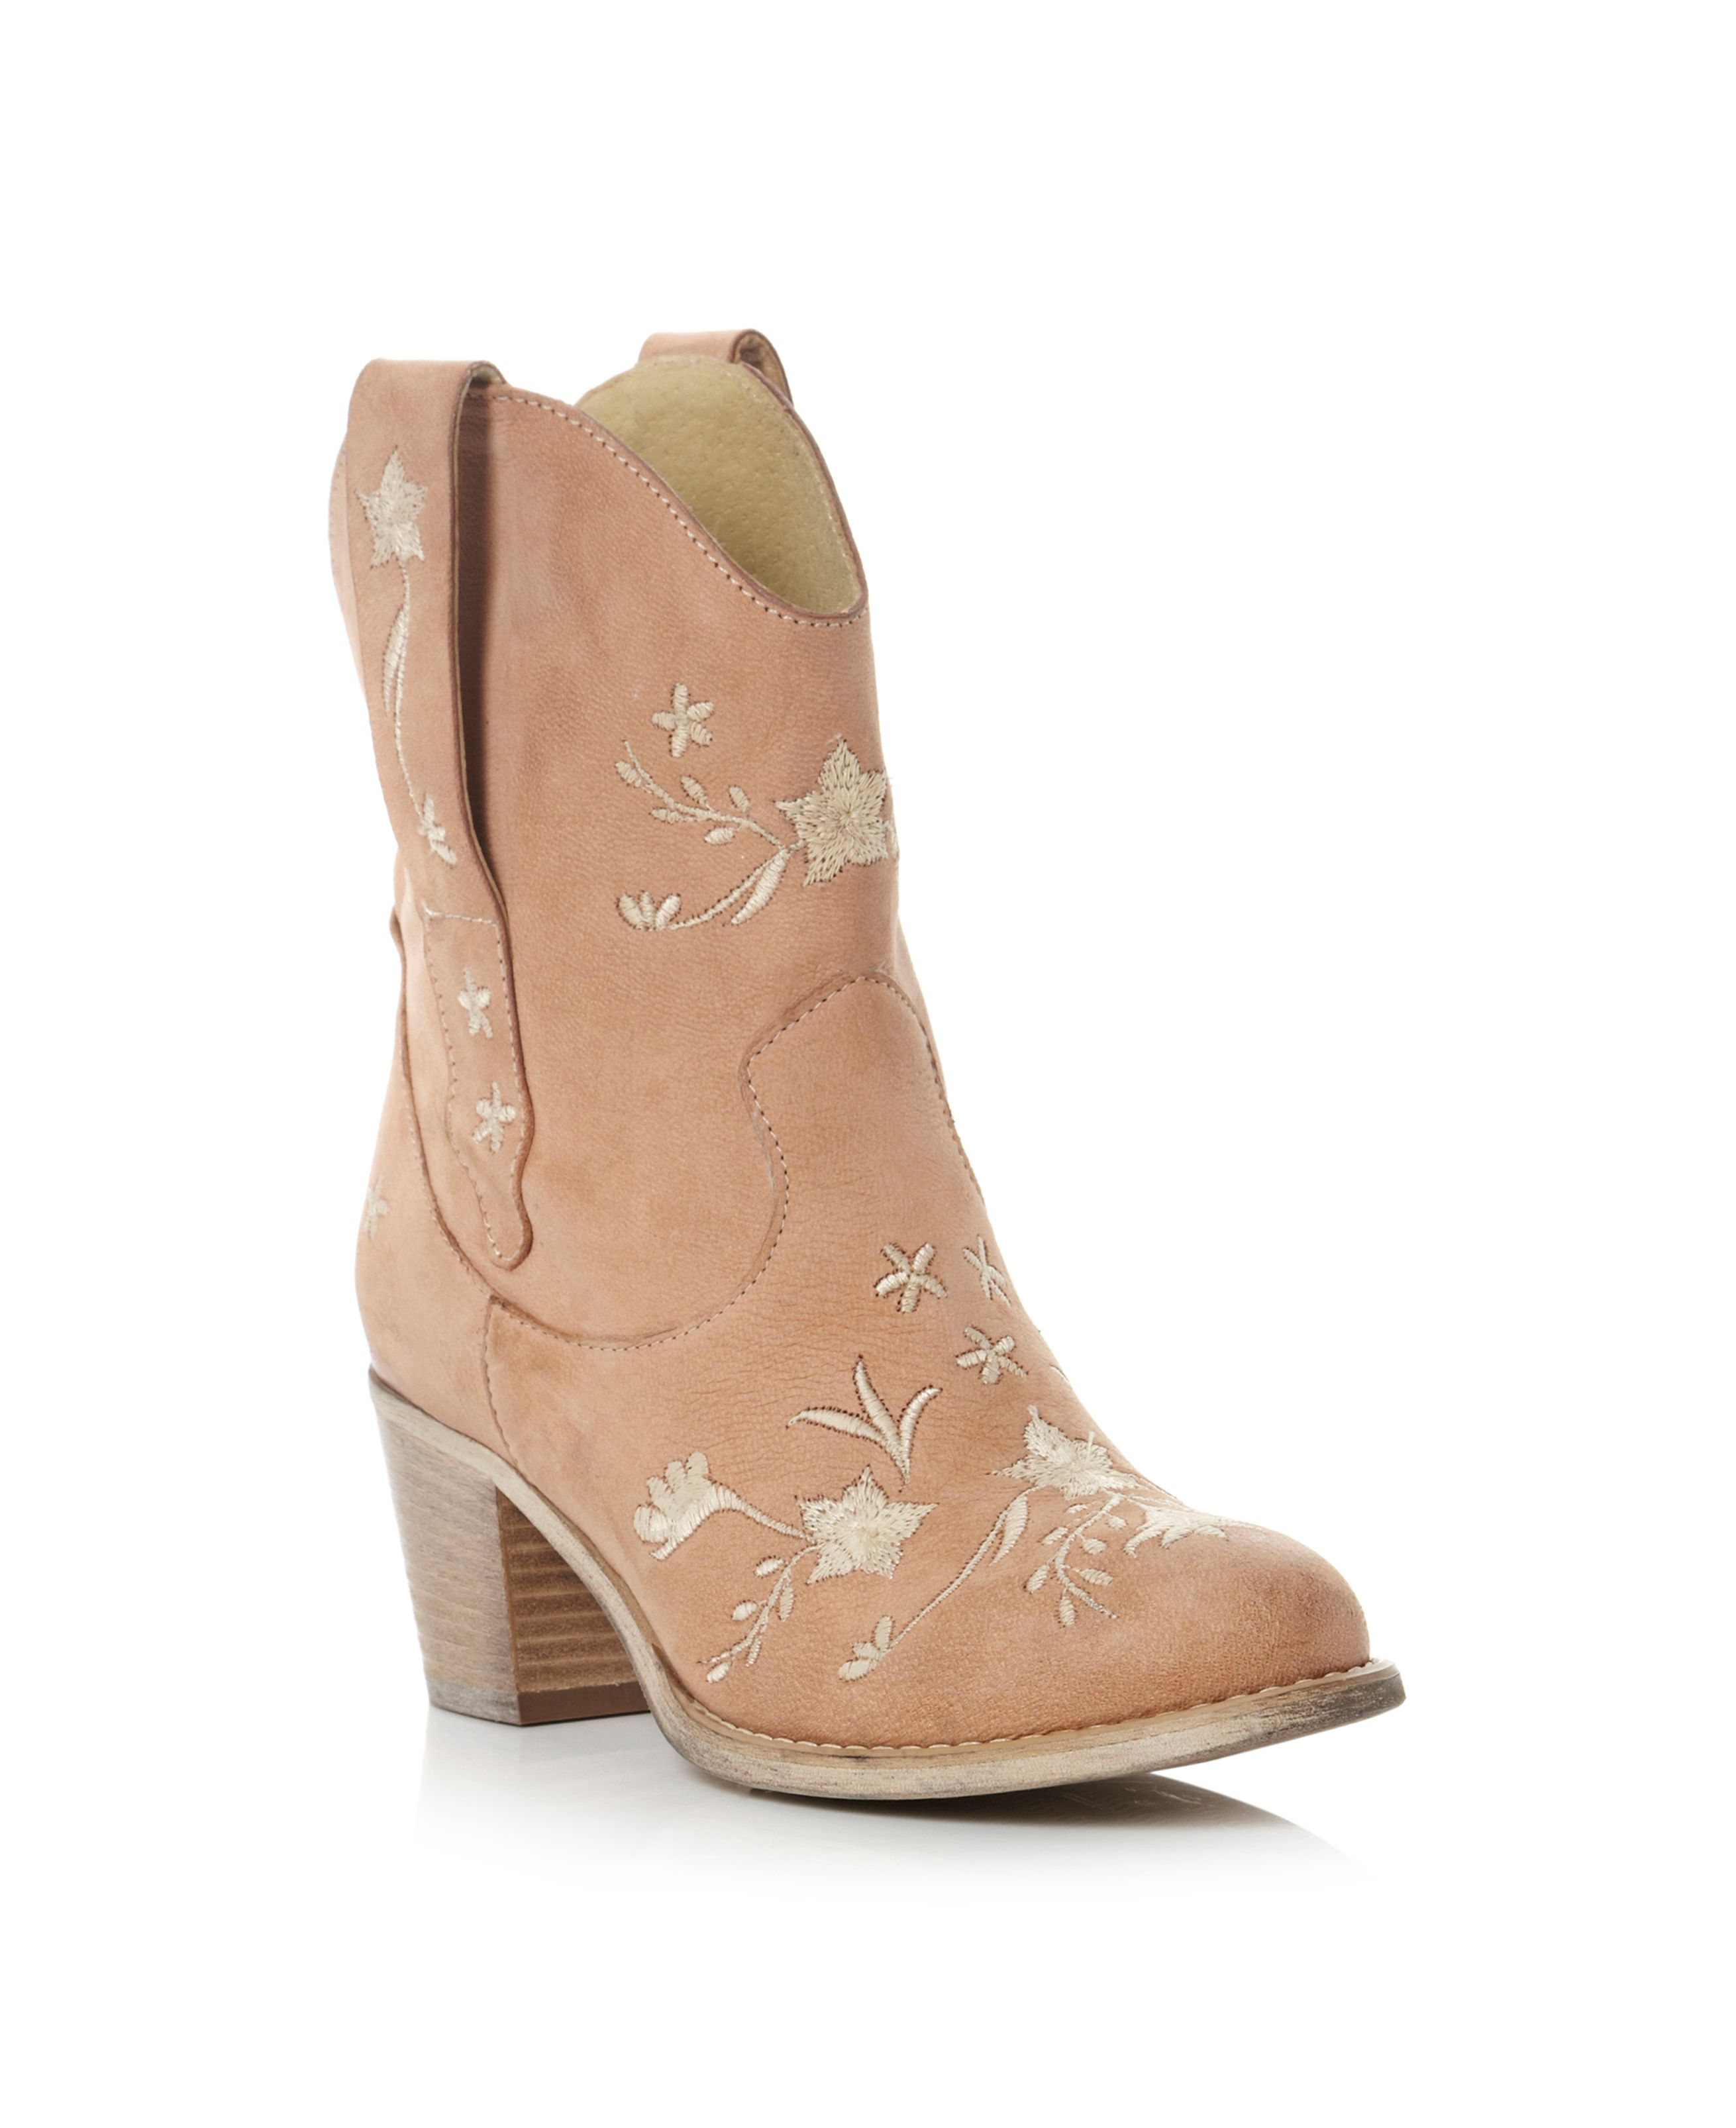 Parrish Embroidery Heeled Boots